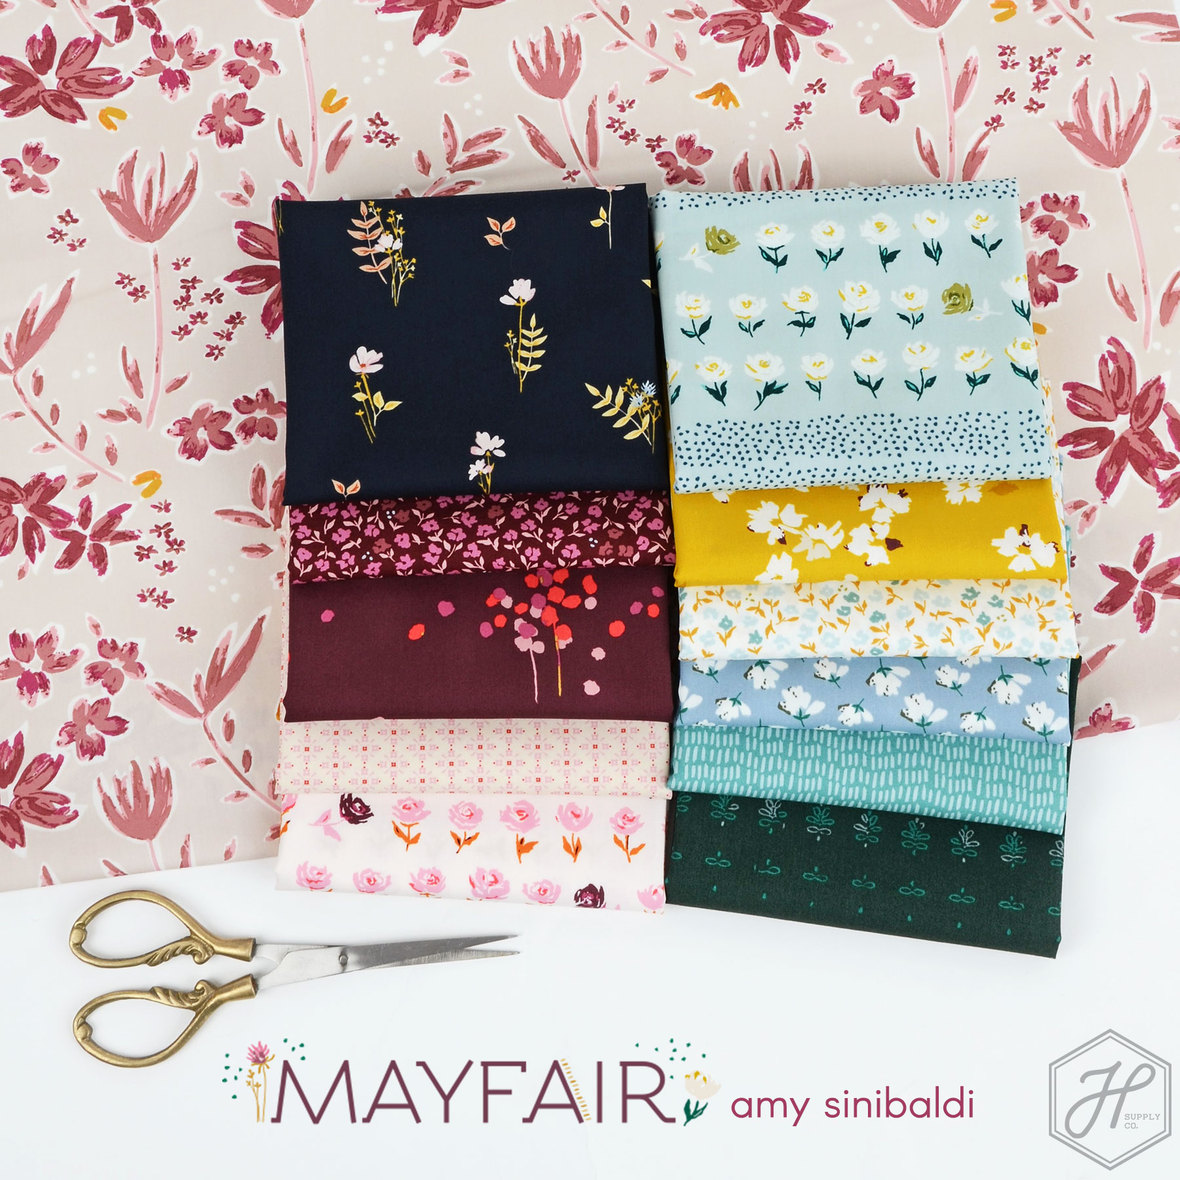 Mayfair-Fabric-Poster-Amy-Sinibaldi-for-Art-Gallery-Fabric-at-Hawthorne-Supply-Co